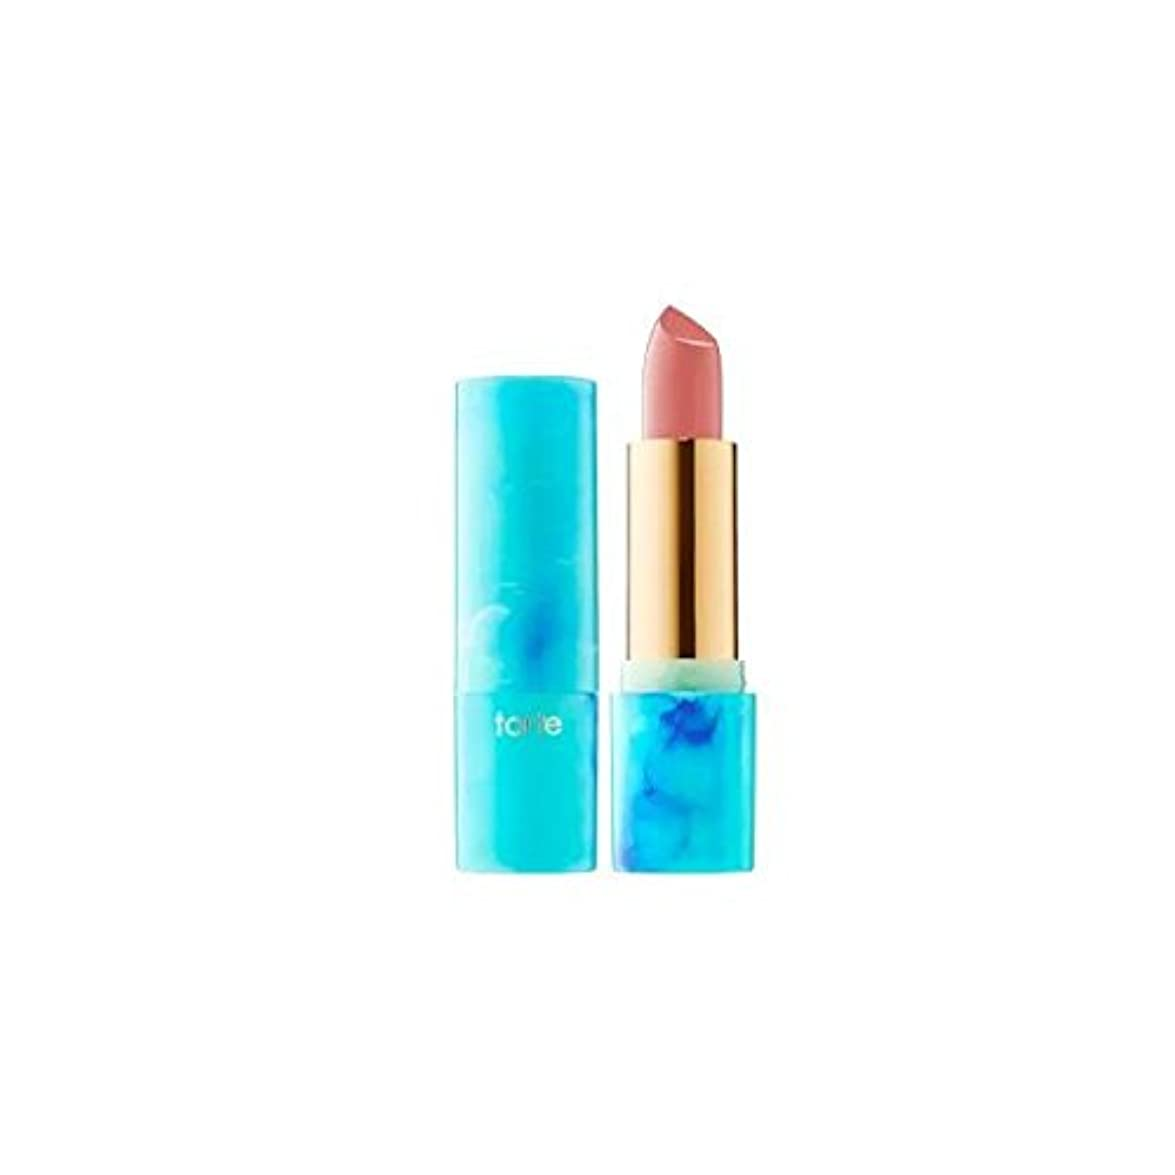 tarteタルト リップ Color Splash Lipstick - Rainforest of the Sea Collection Satin finish